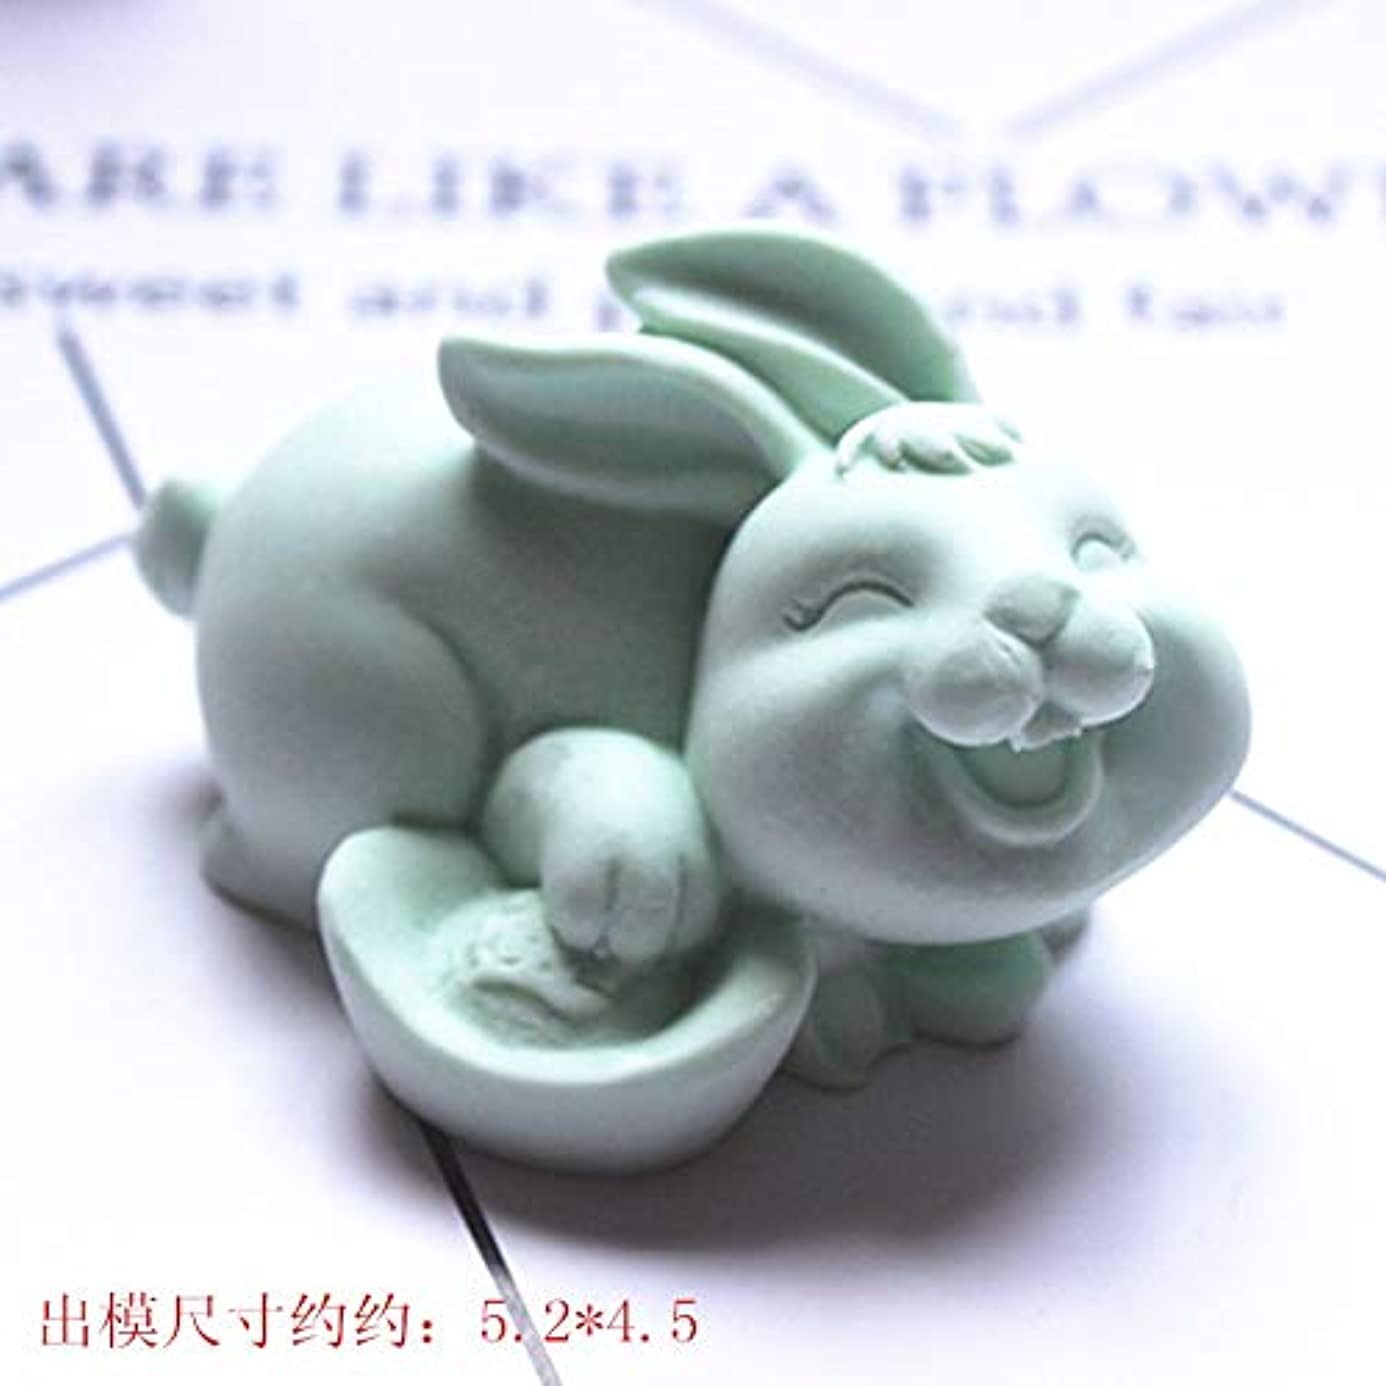 Cake Molds - The C969 Rabbit Aromatherapy Plaster Cast Of Hand Soap Mold Mousse Cake - Candles Mold Cake Molds Chocolate Cakes Plaster Rabbit Casting Fondant